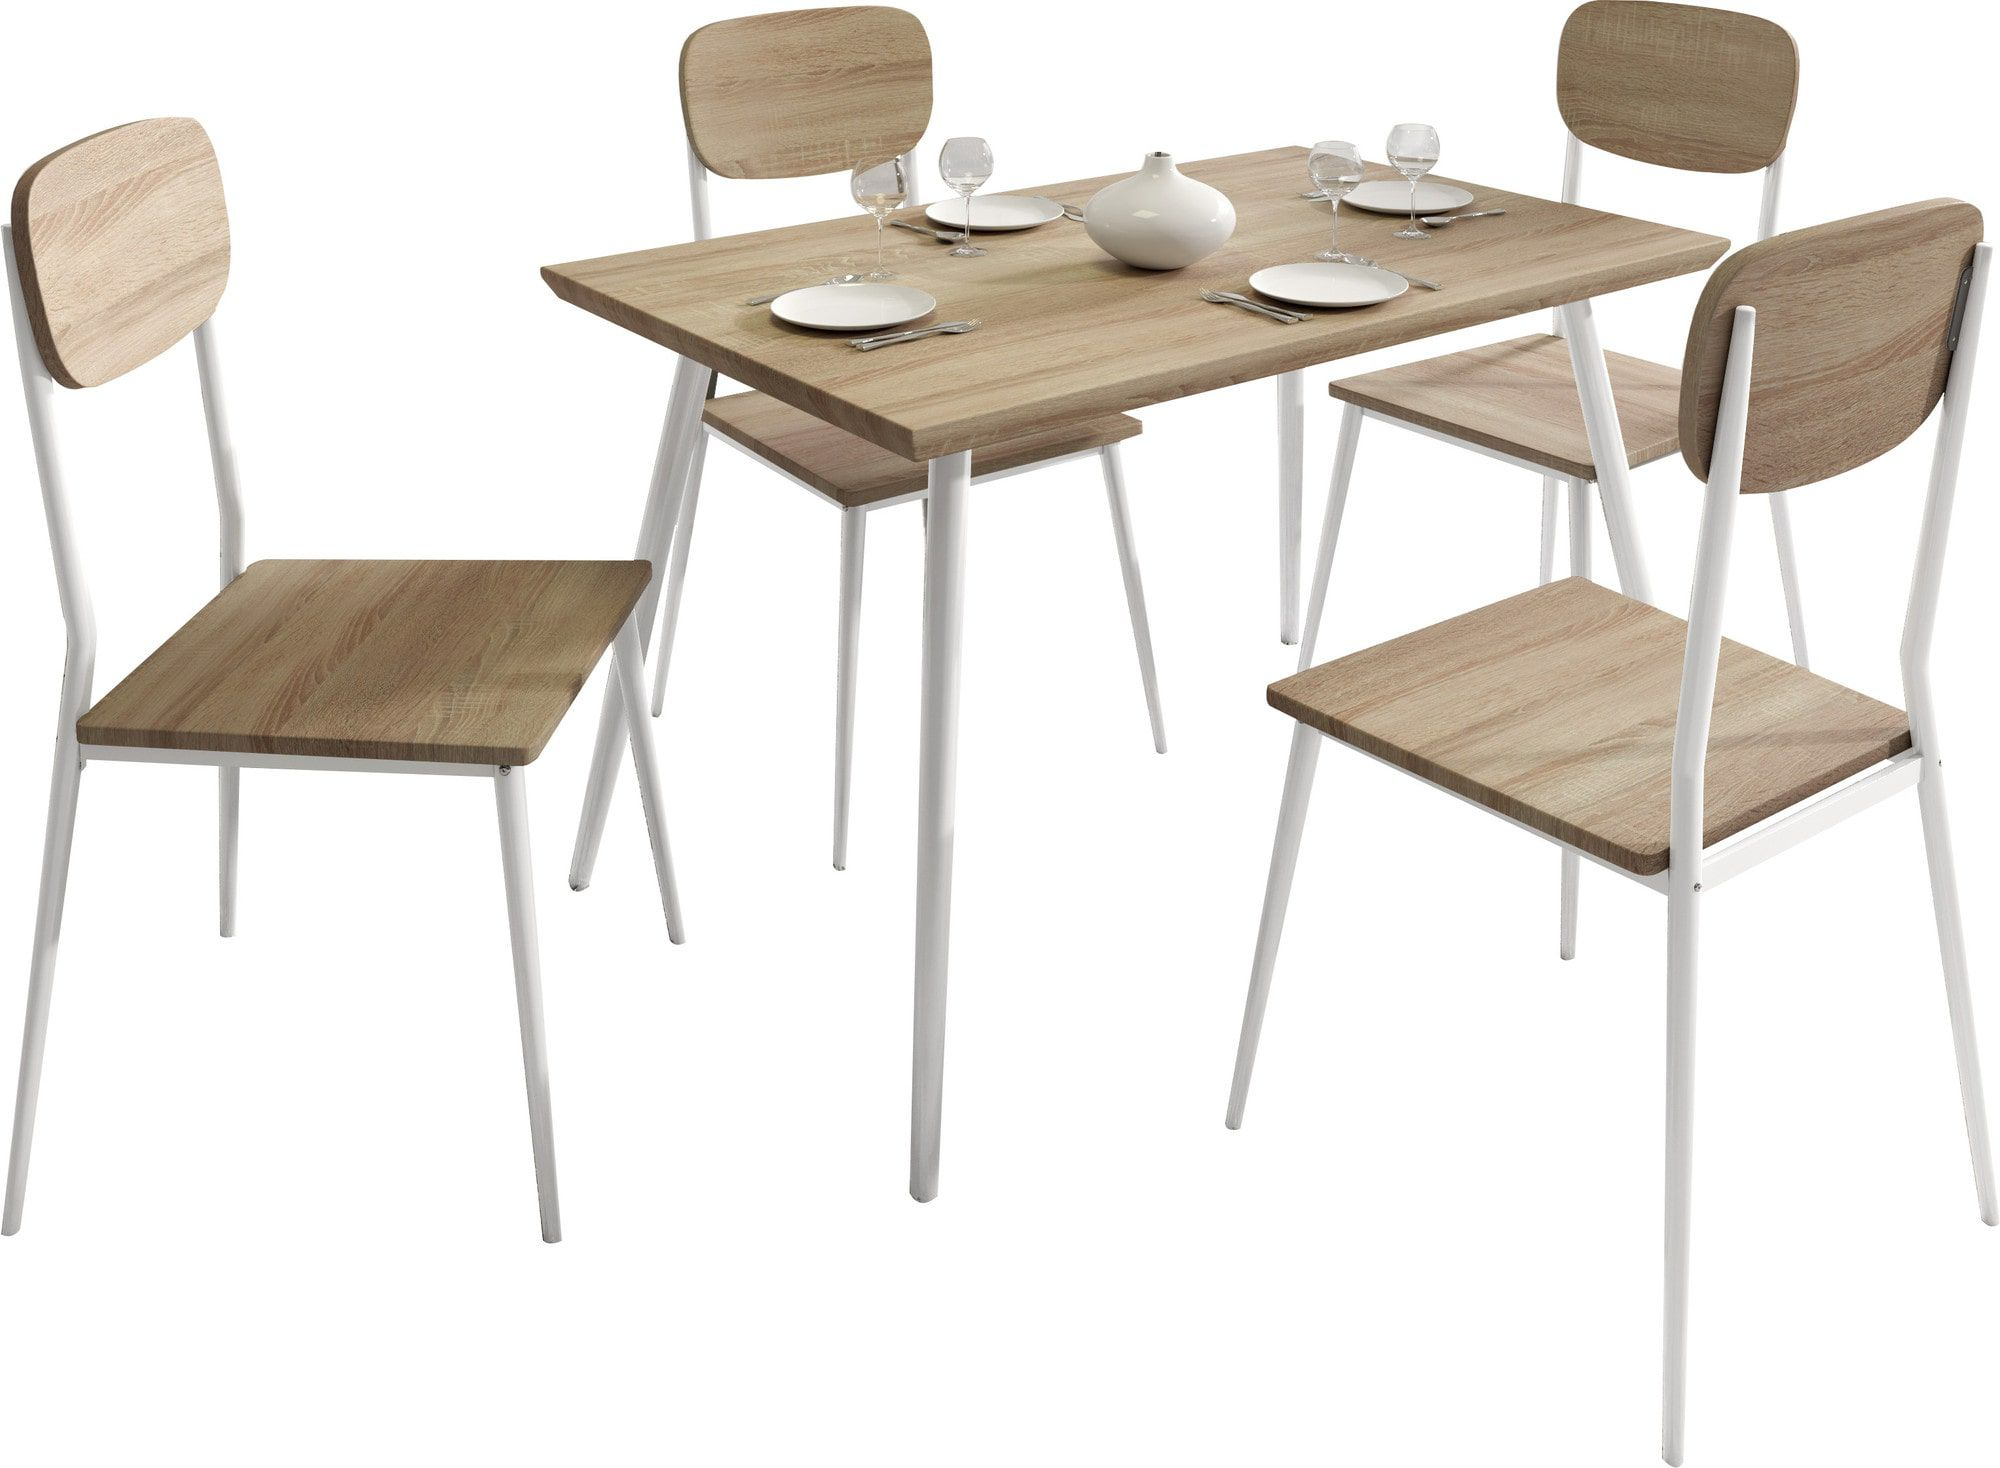 Comment assortir l ensemble table et chaise de sa salle for Ensemble table salle a manger et chaise